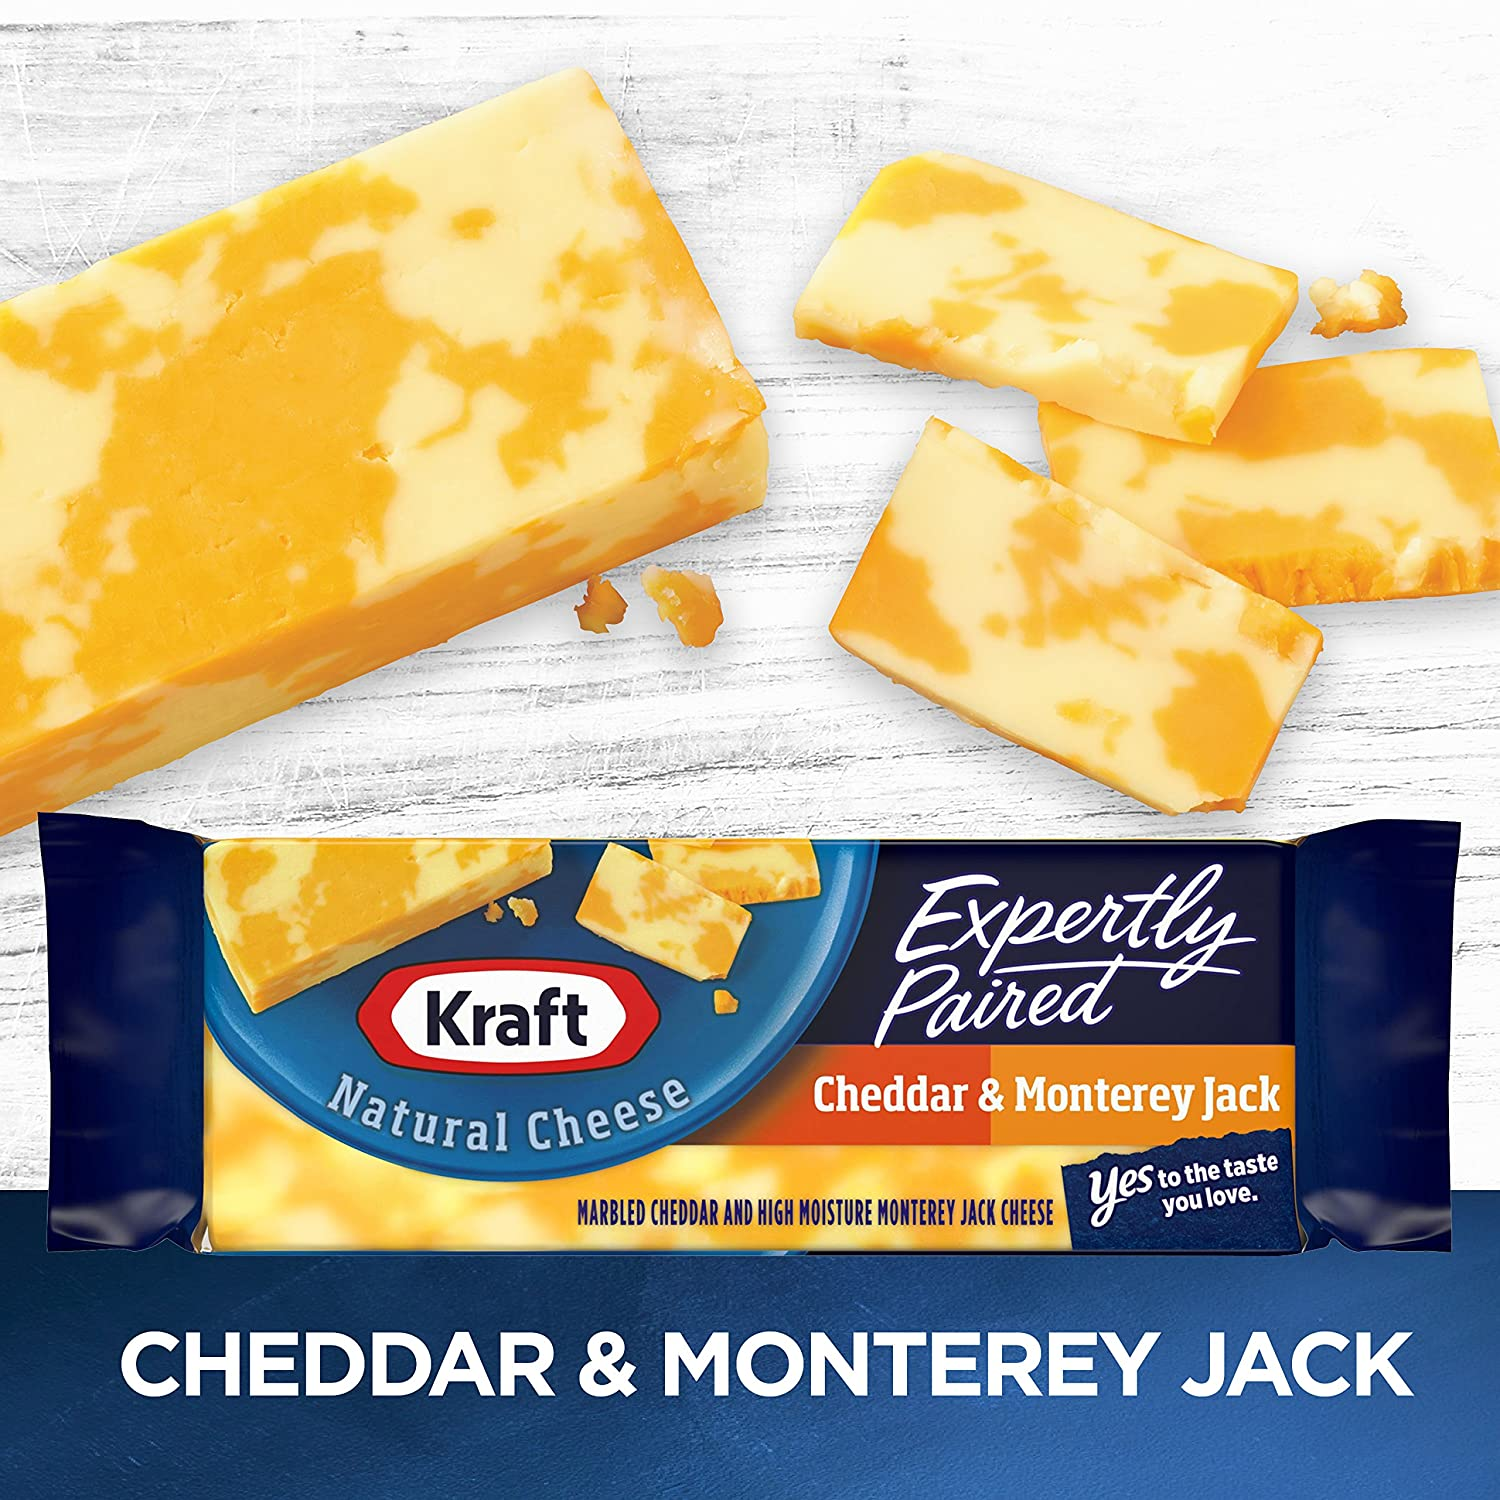 Kraft Expertly Paired Cheddar & Monterey Jack Marbled Cheese Block